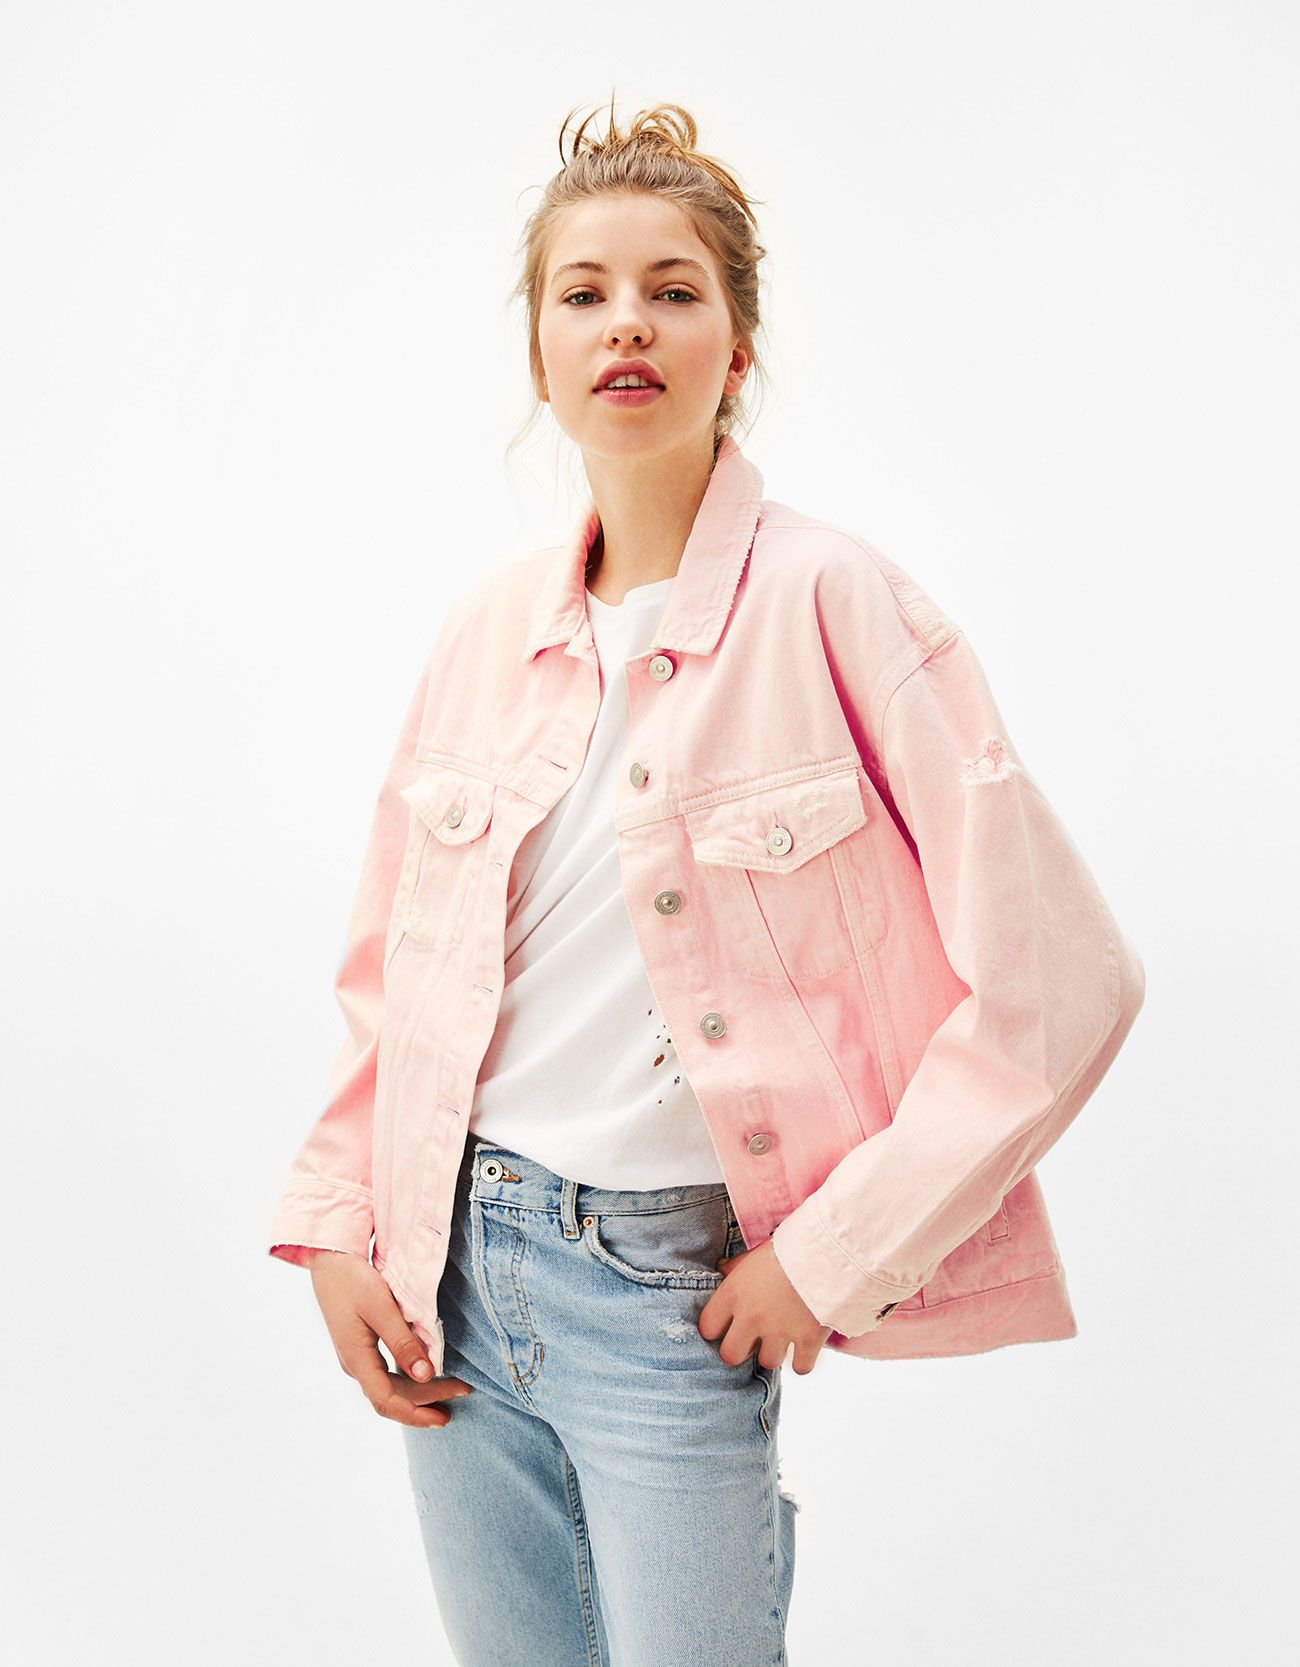 949dff888d6 Oversized denim jacket. Discover this and many more items in Bershka with  new products every week